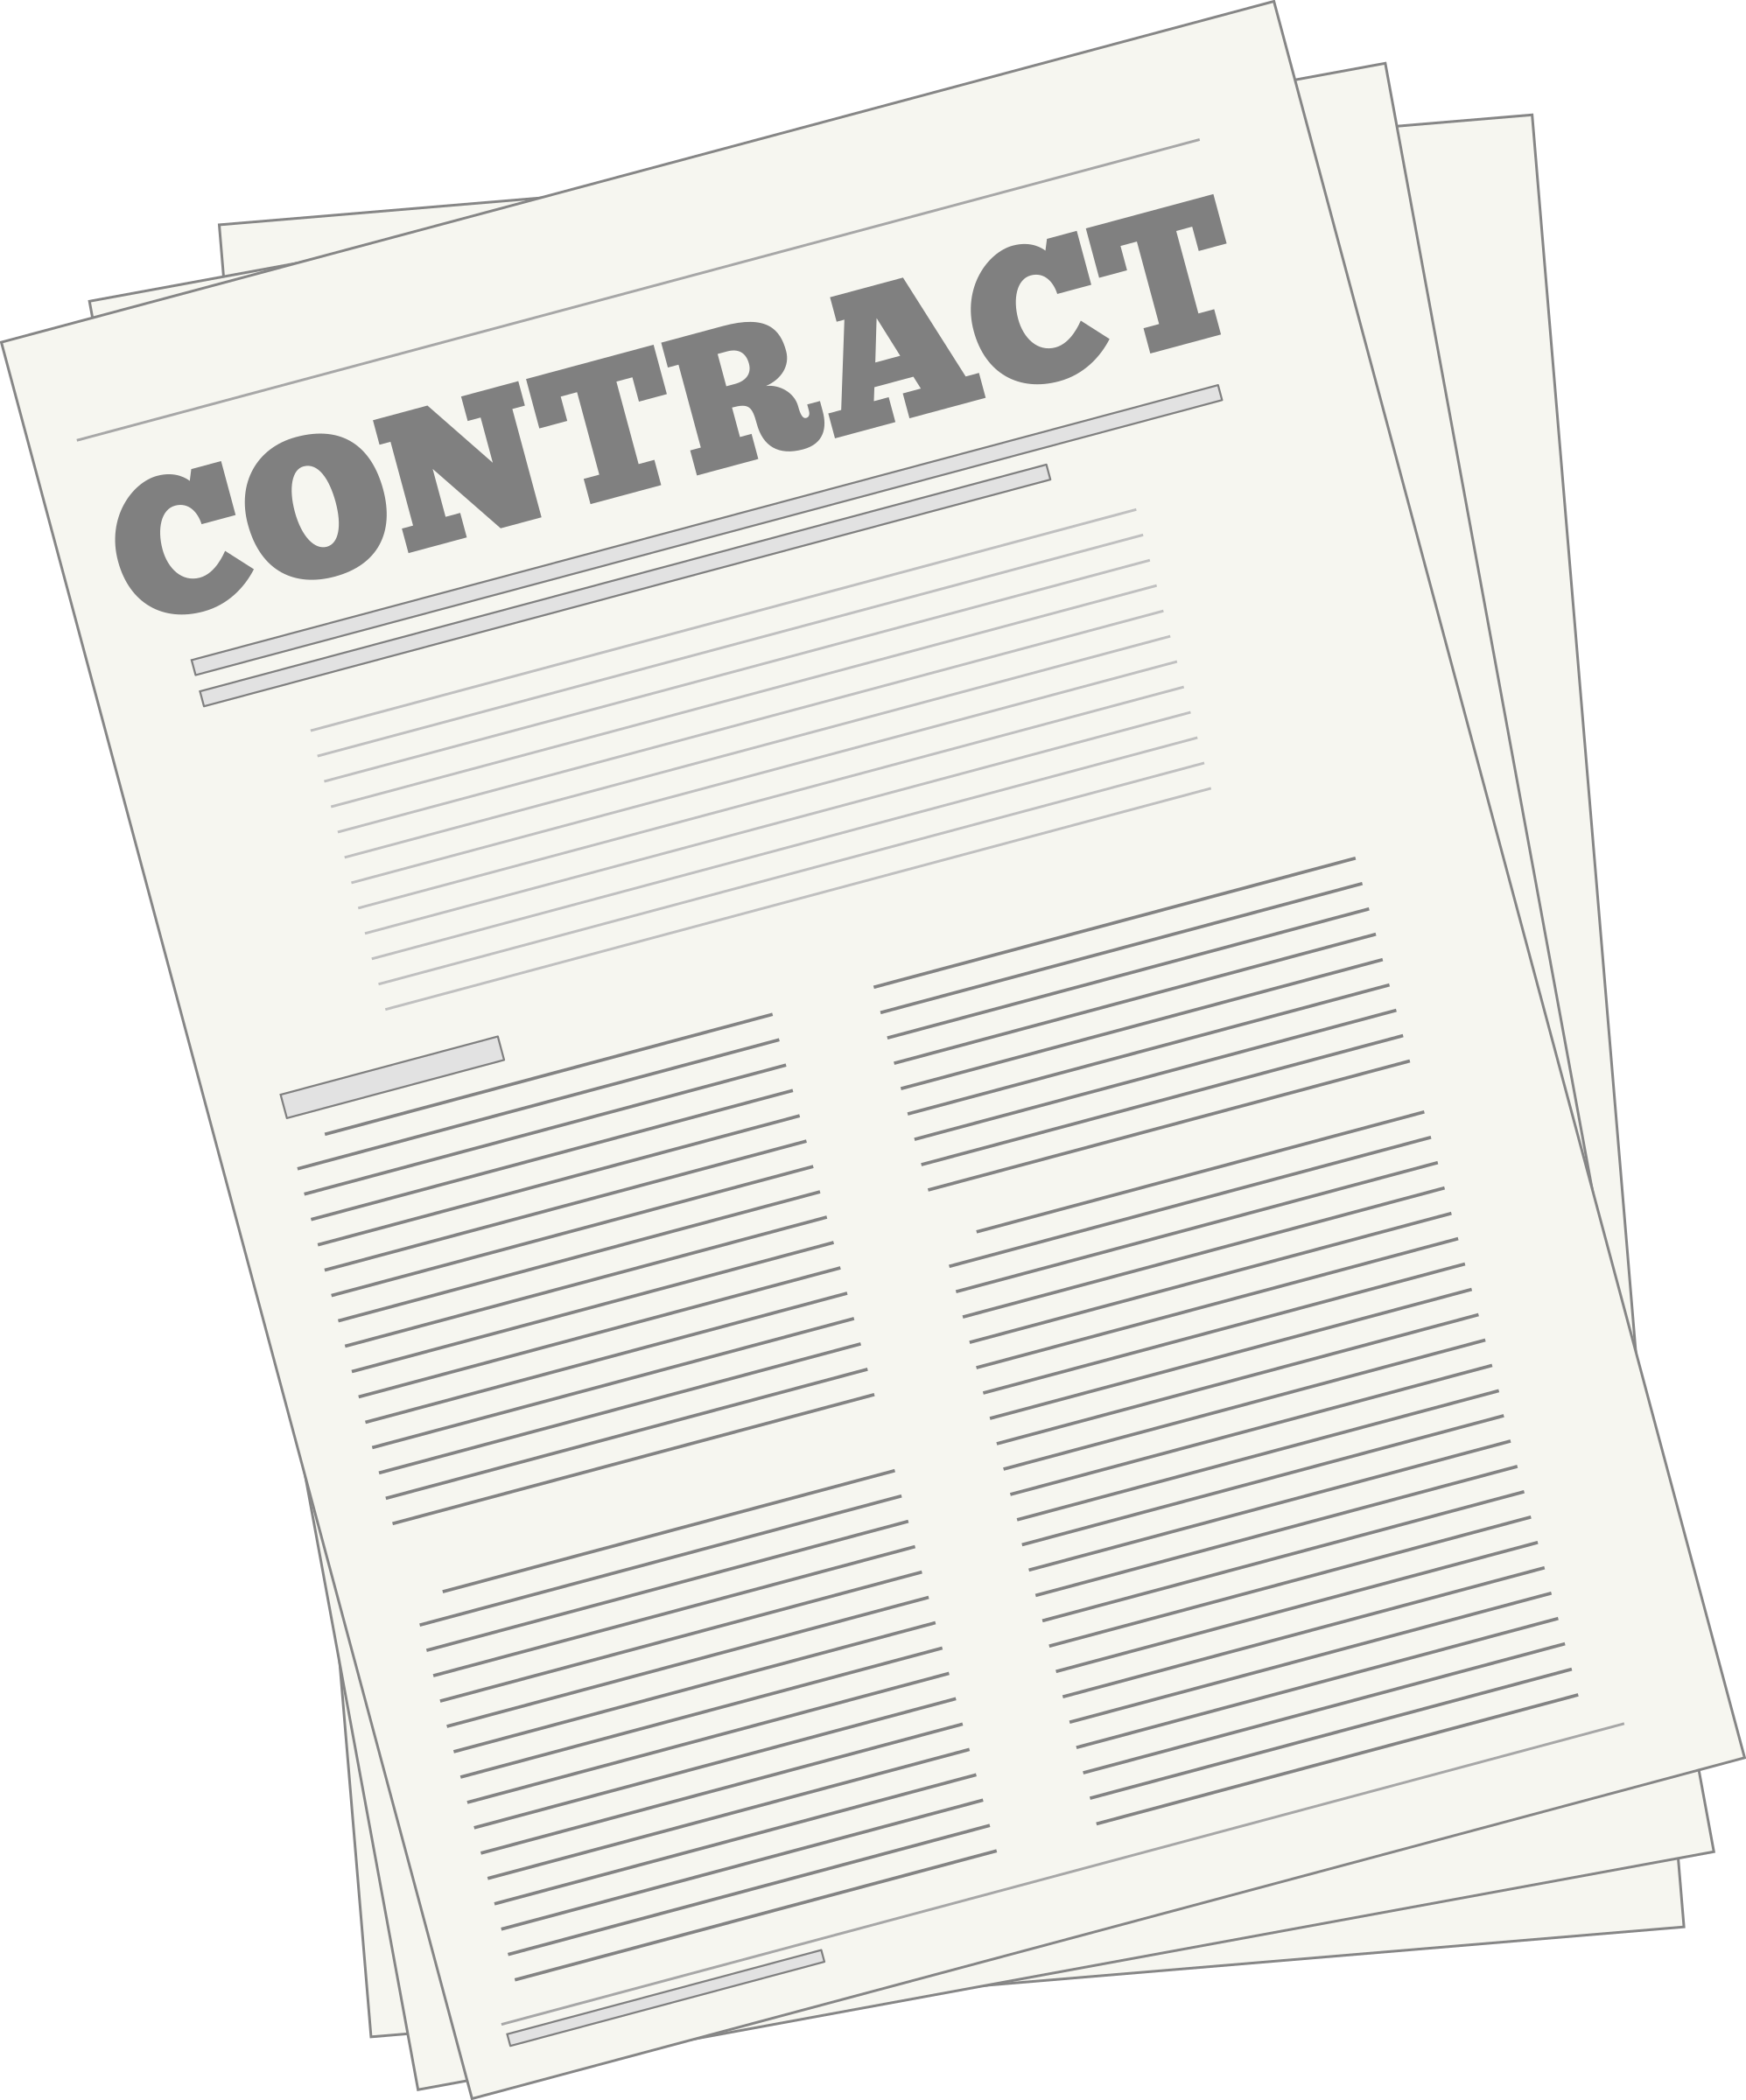 Contract by Alastair